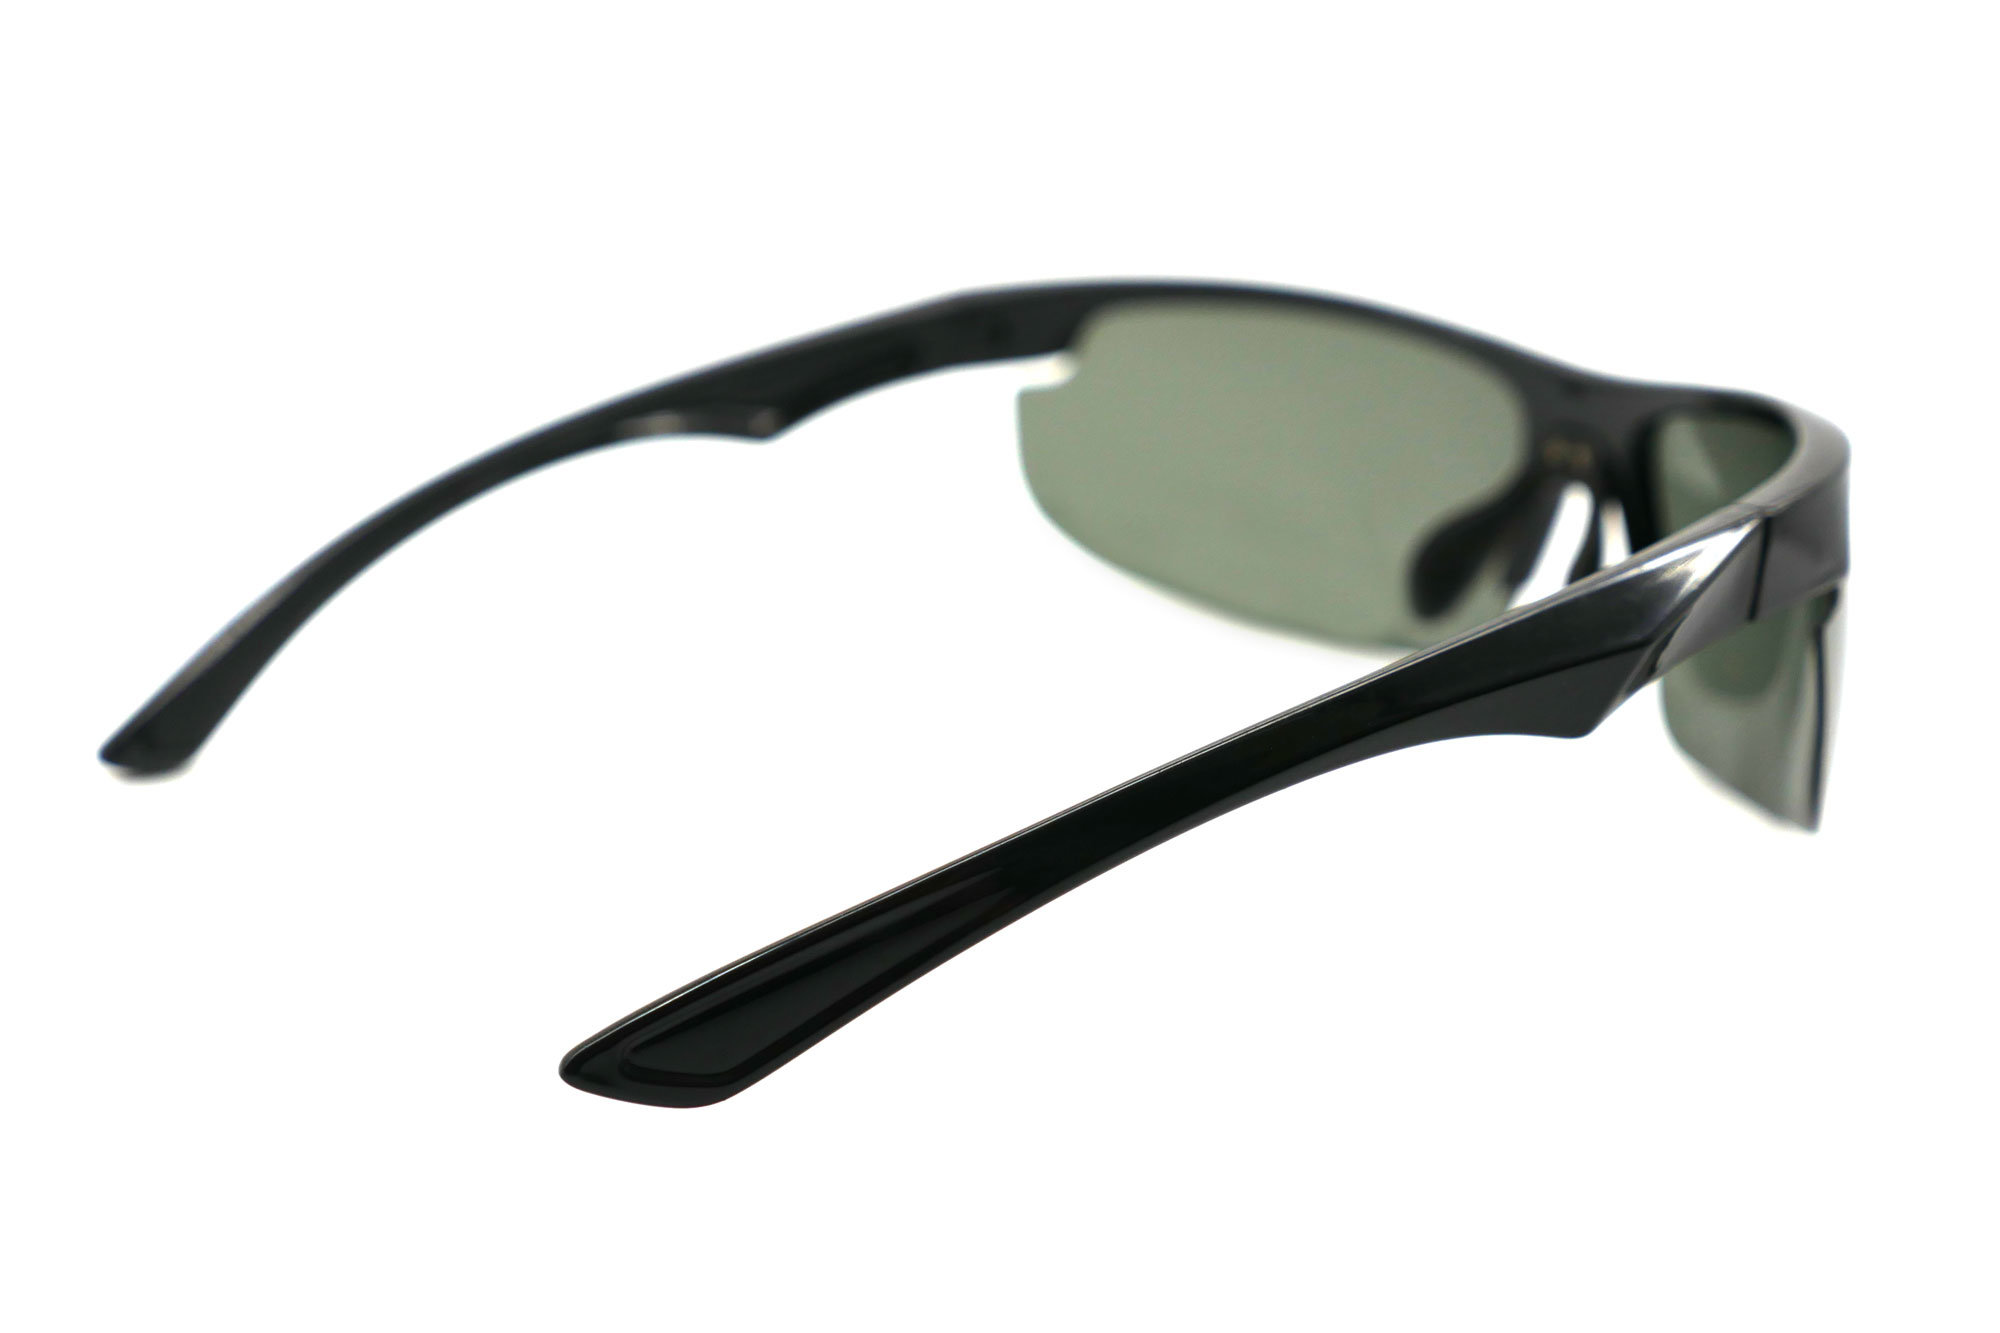 New Designer Cycling Sunglasses with Lightweight Plastics